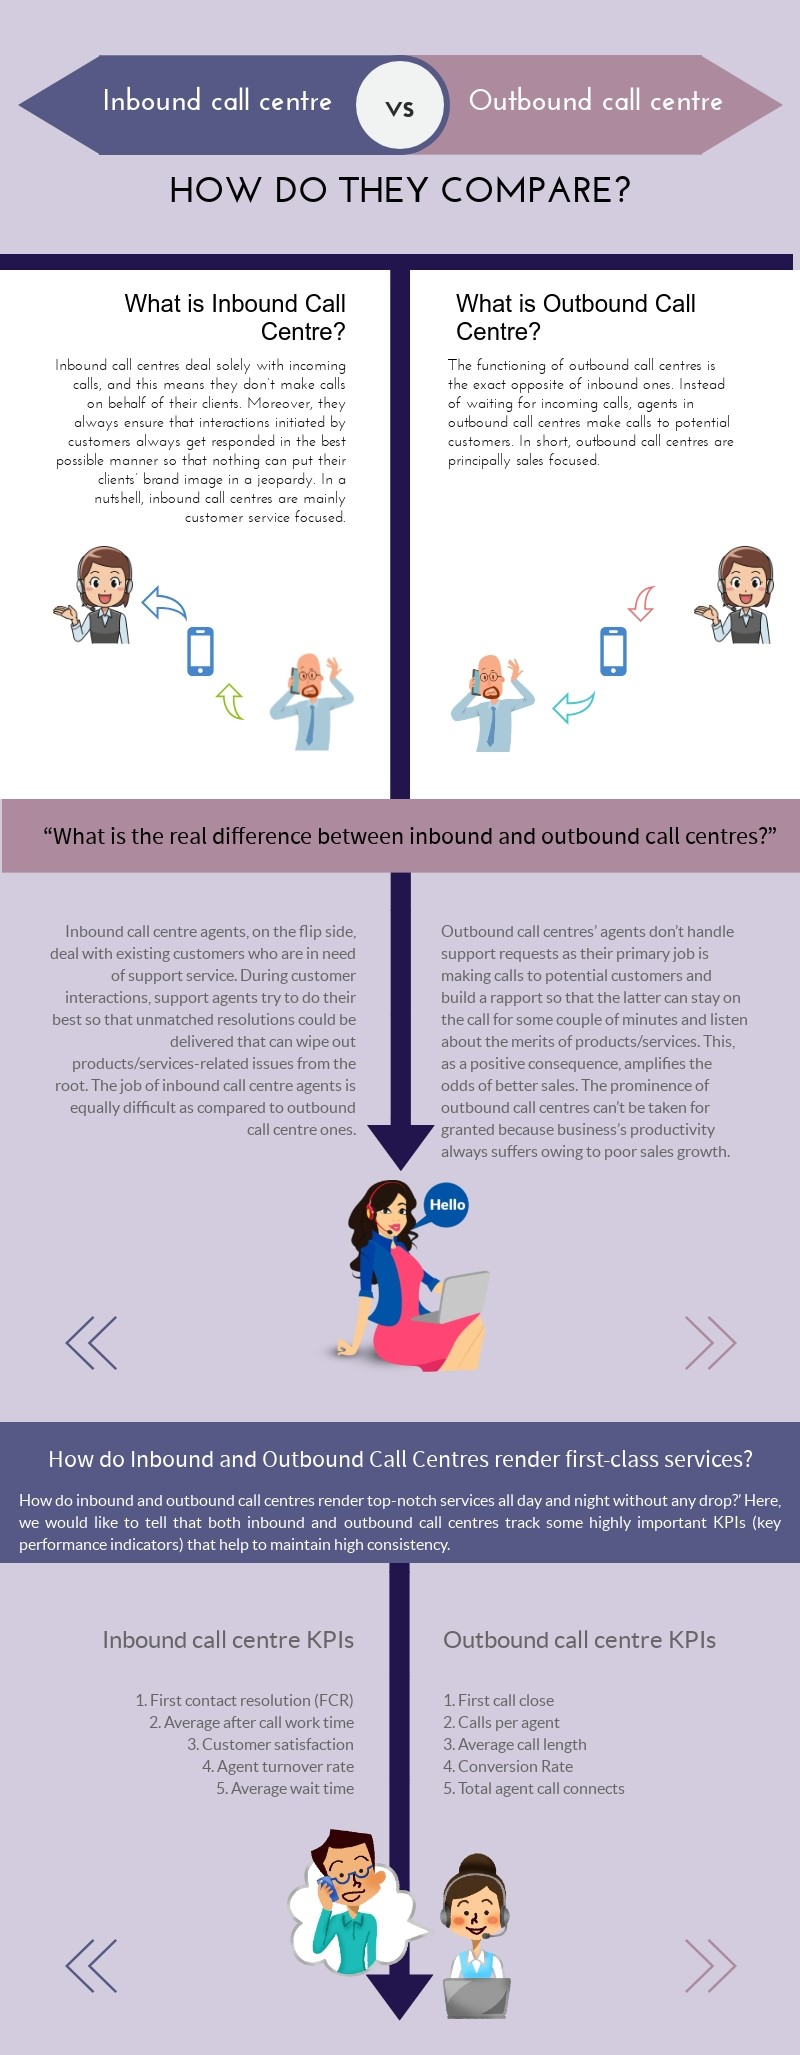 Difference between Inbound and Outbound Call Centres in Infographic